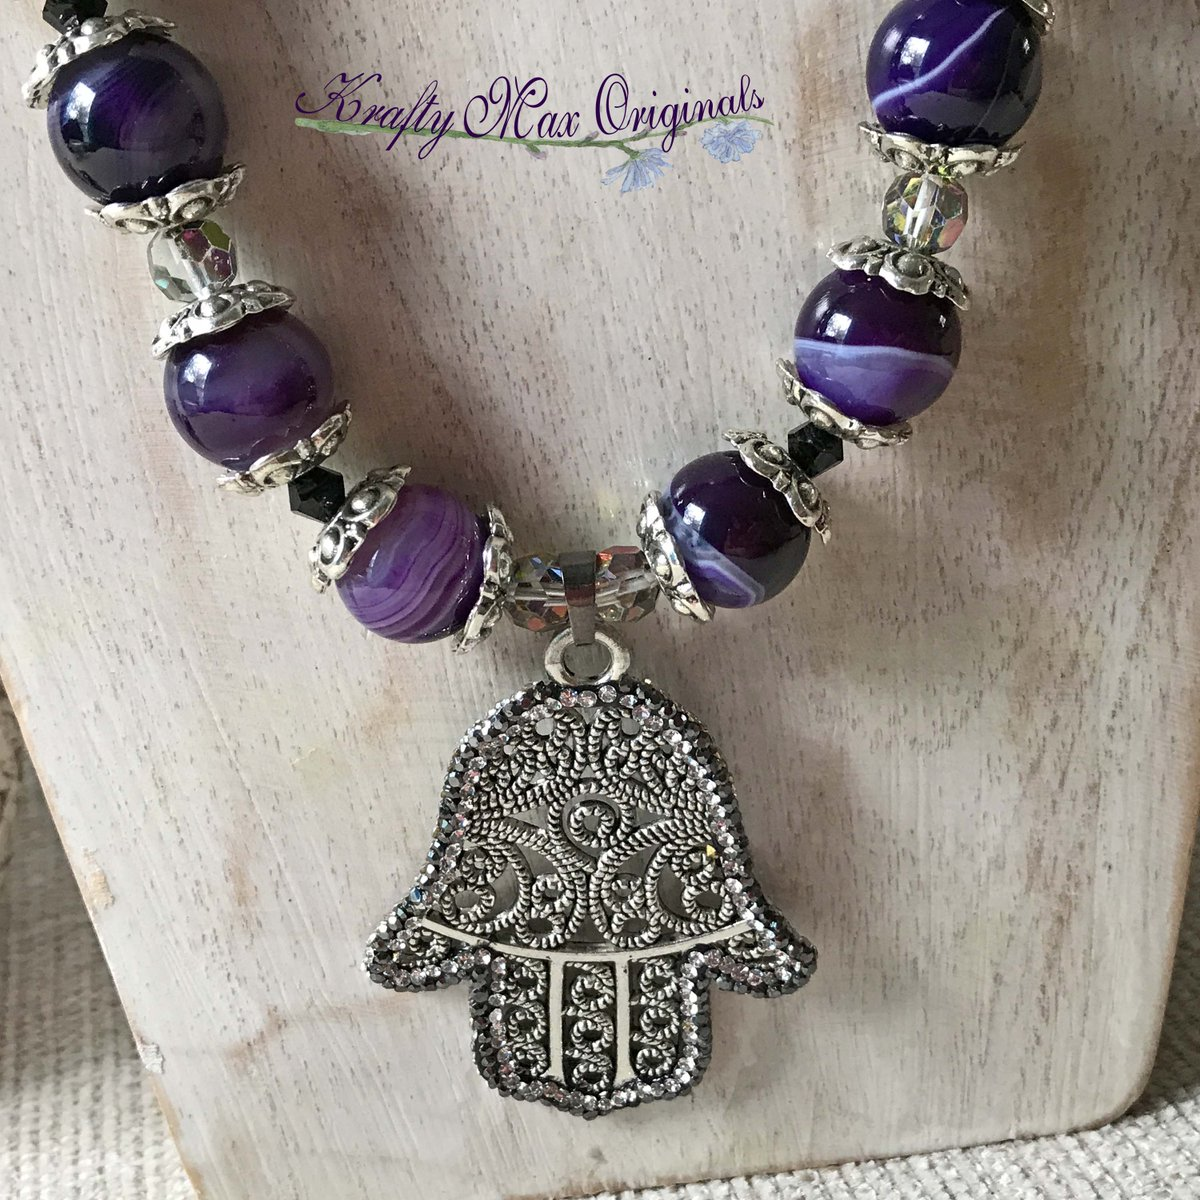 Purple Banded Agate with Swarovski Crystals and an Encrusted Hand Necklace Set (discounted from $57 down to $26)  #handmade #jewelry #buyhandmade #handmadelove #handcrafted #kraftymax #kmax #discount #sale #bargain #save #clearance